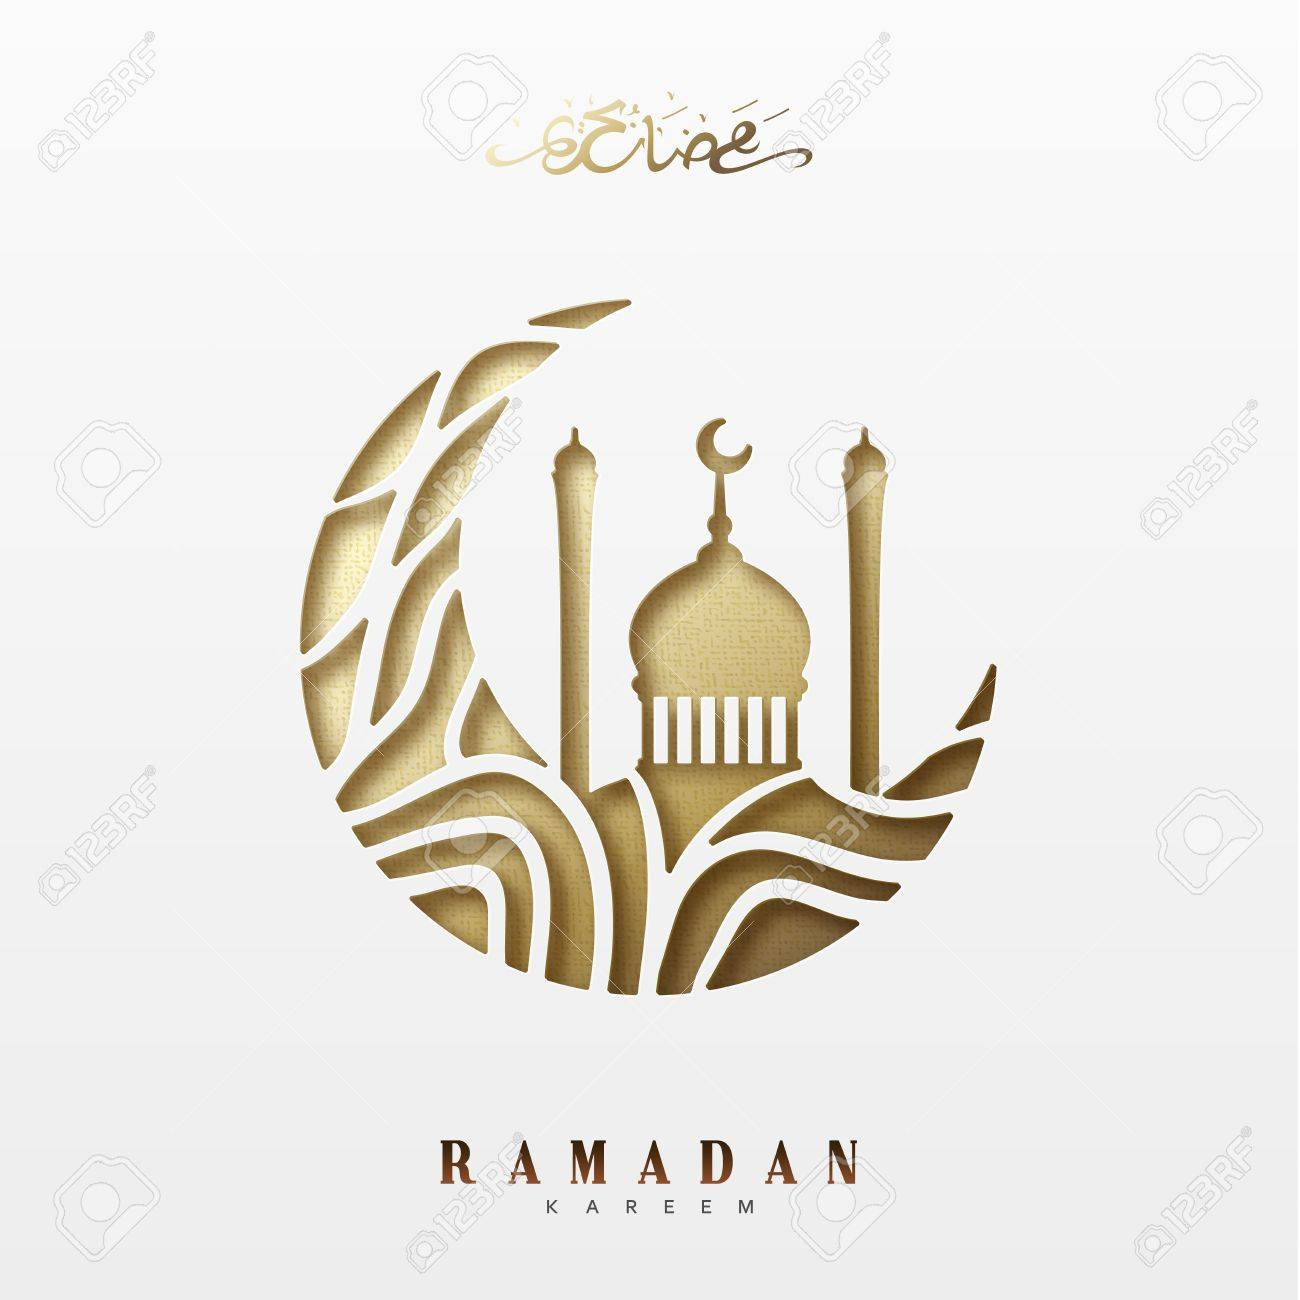 Ramadan greeting card with arabic calligraphy Ramadan Kareem